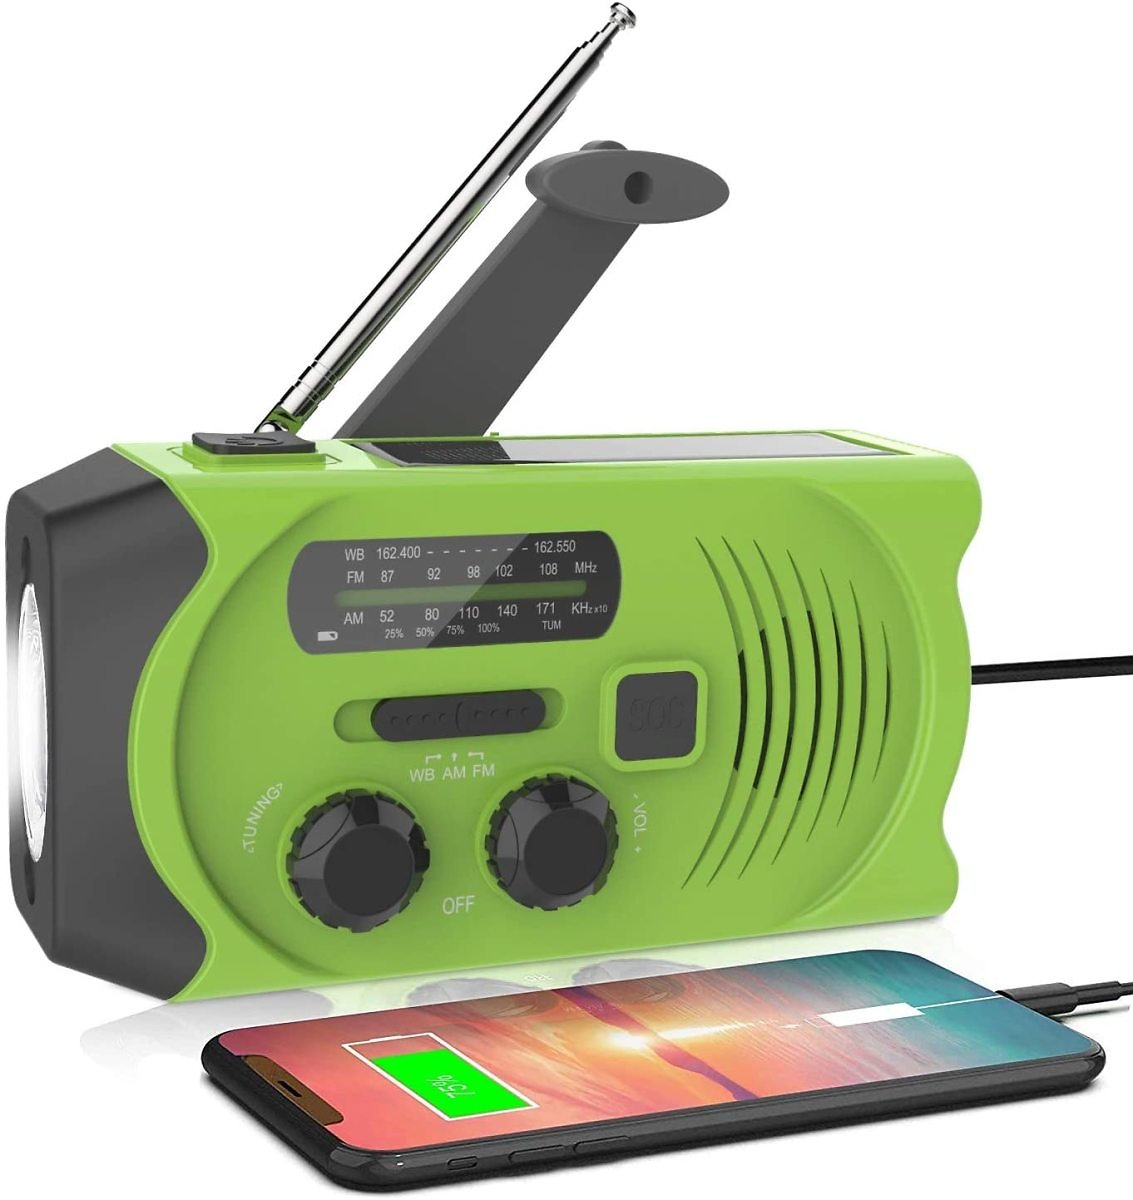 Latest Emergency Solar Hand Crank Portable Radio, NOAA Solar Hand Crank Portable Radio with M/FM, LED Flashlight, Reading Lamp,